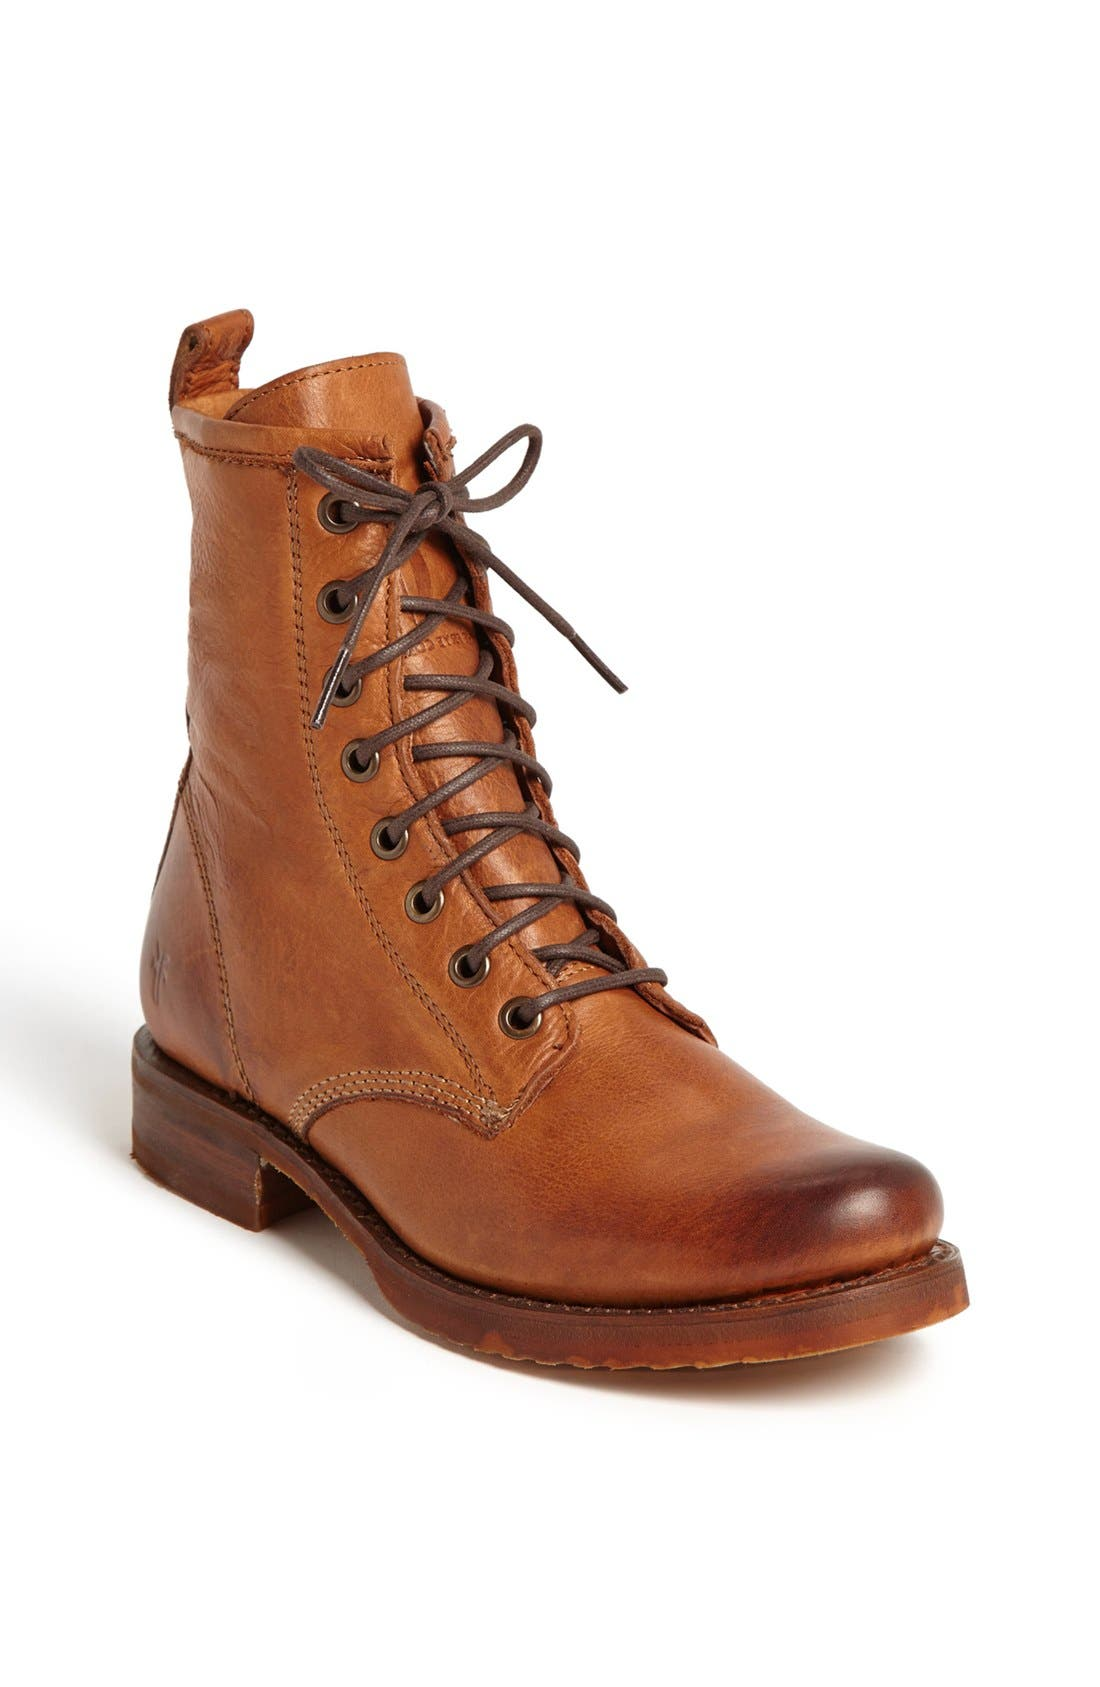 Main Image - Frye 'Veronica Combat' Boot (Women)